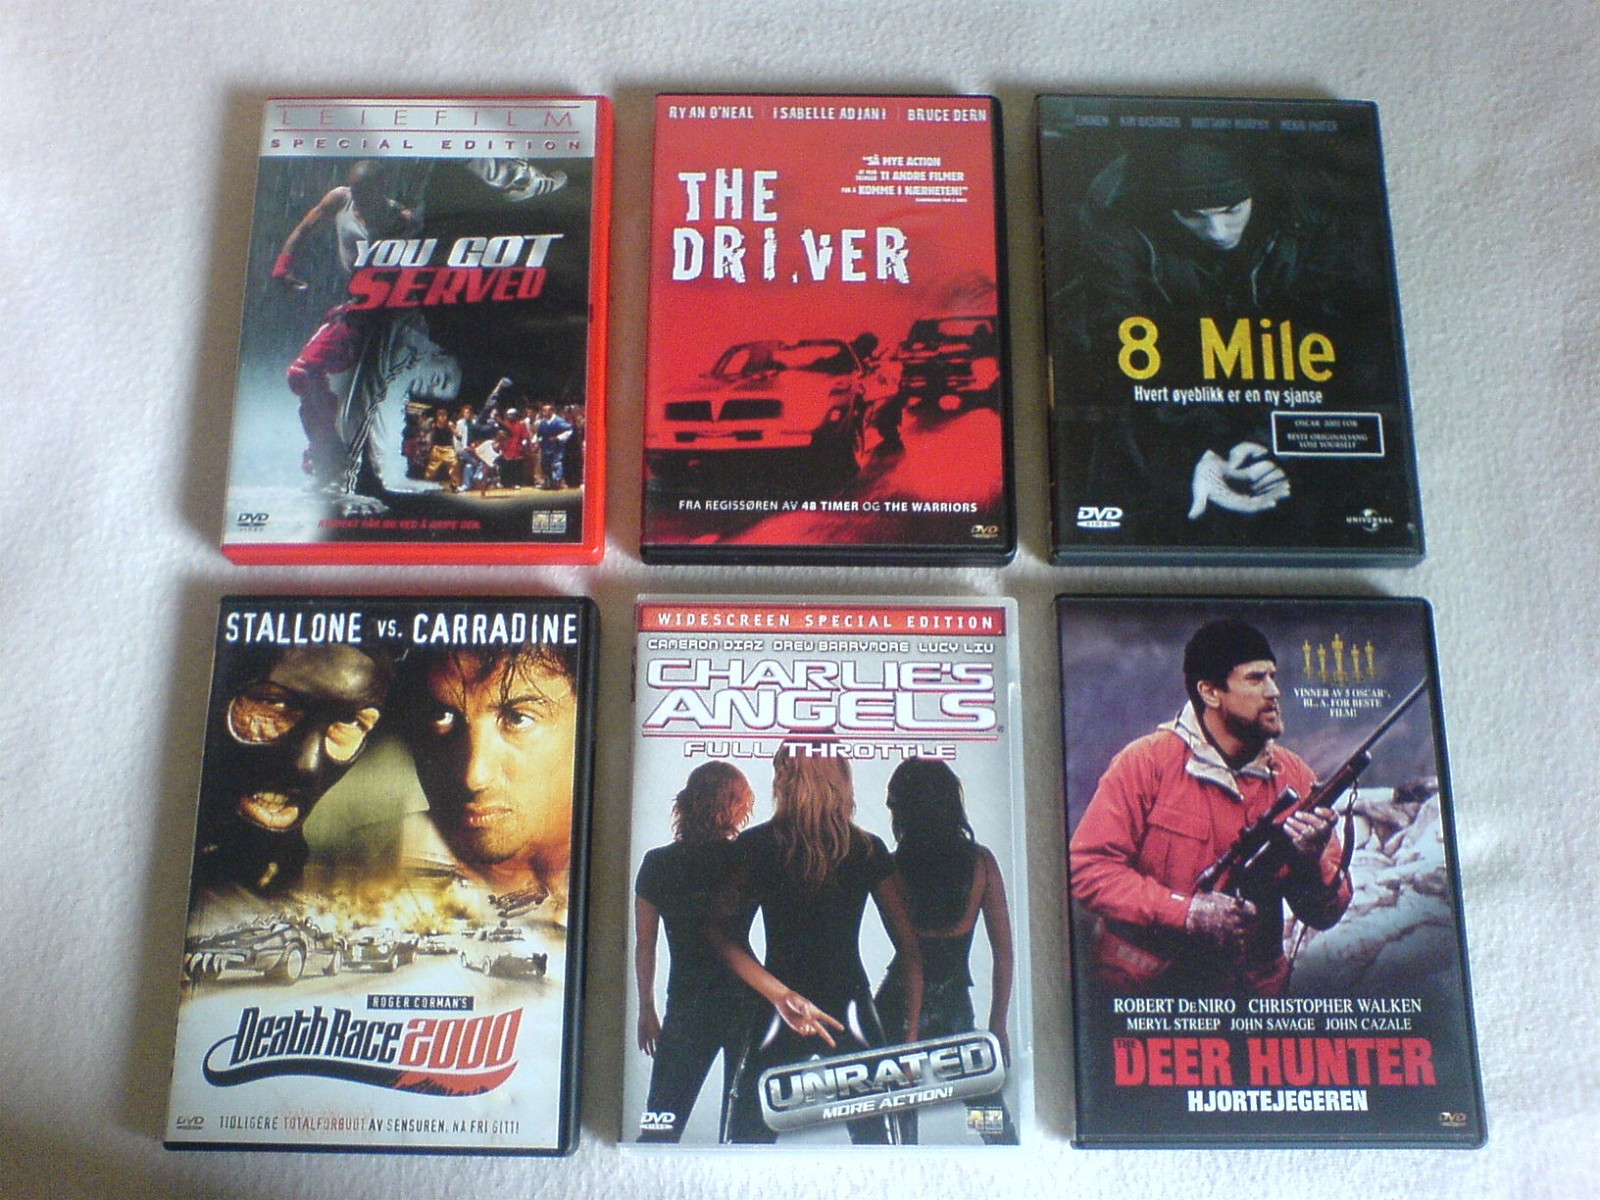 DVD filmer, 50 kroner per stk. - Hakadal  - DVD filmer, 50 kroner per stk.